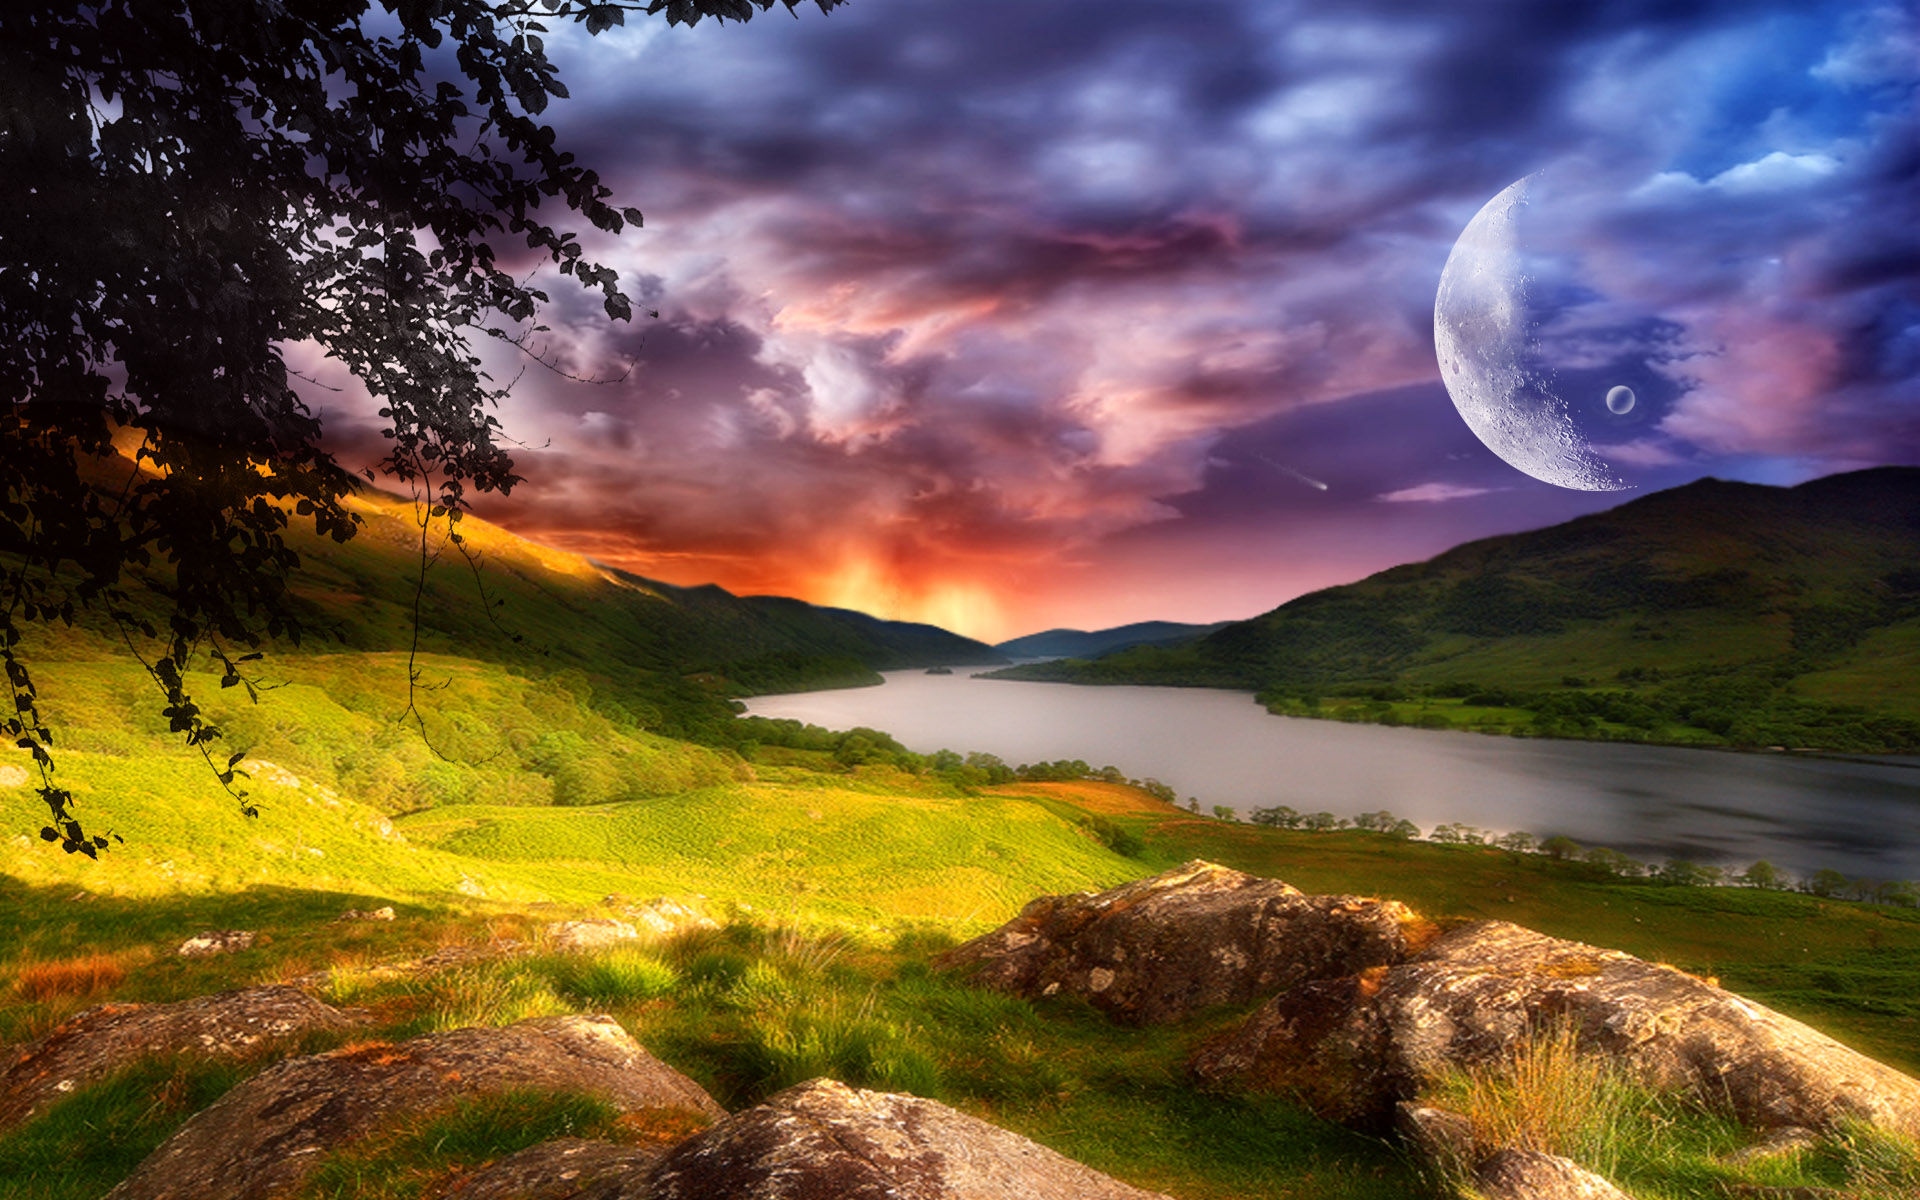 Landscape Wallpaper PC Desktop